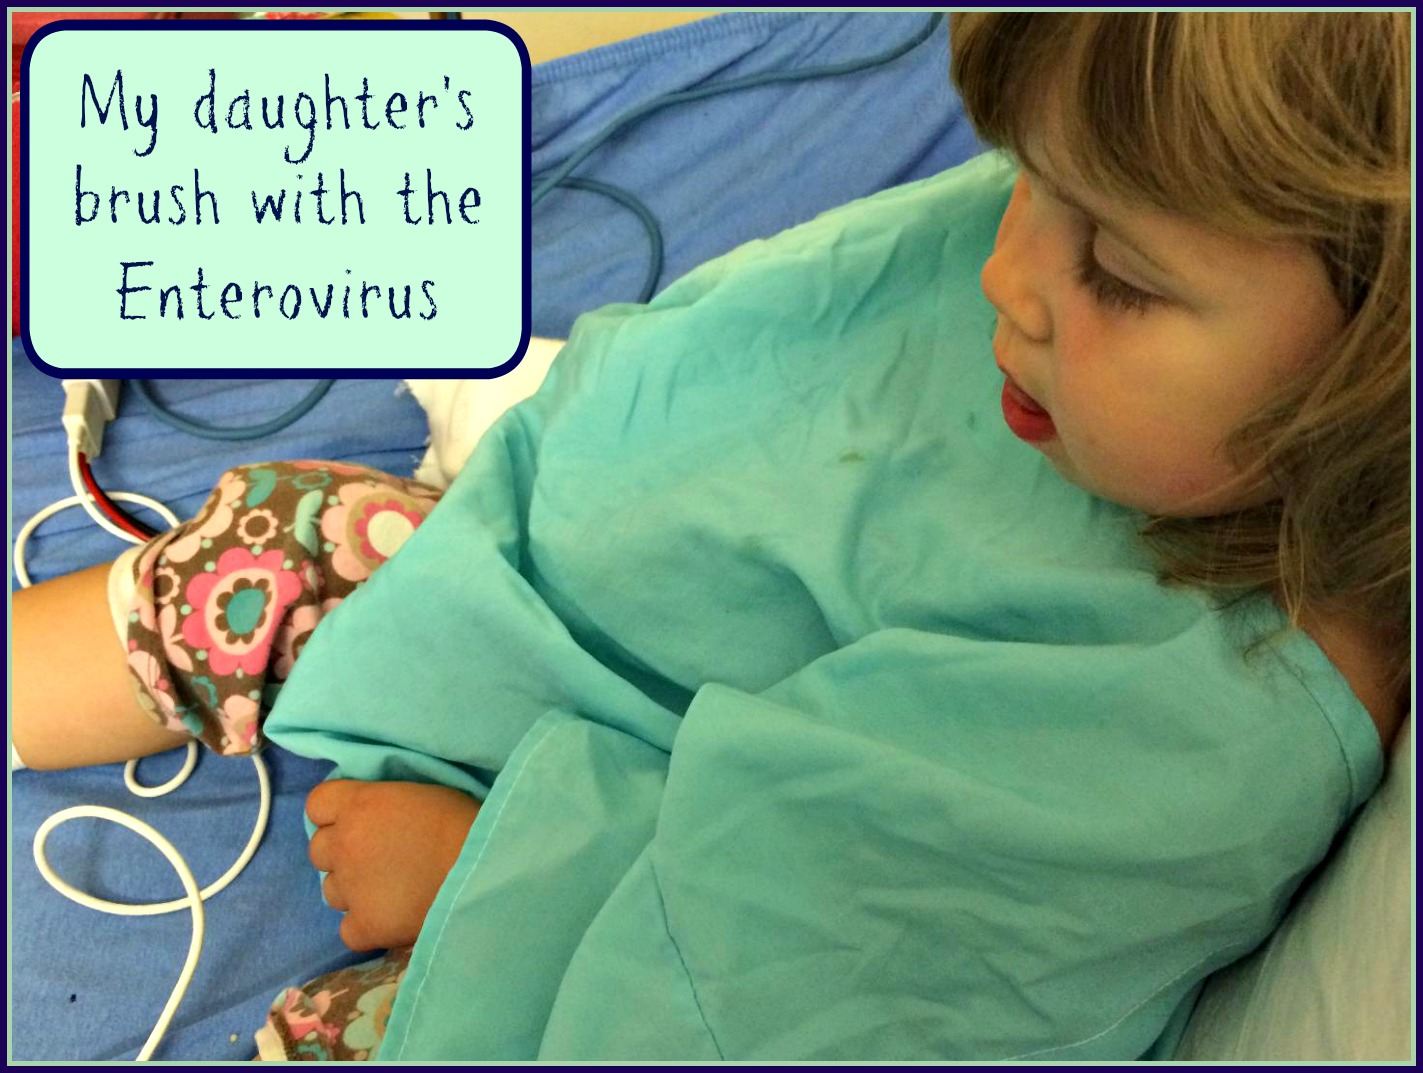 My Daughter's Brush With the Enterovirus